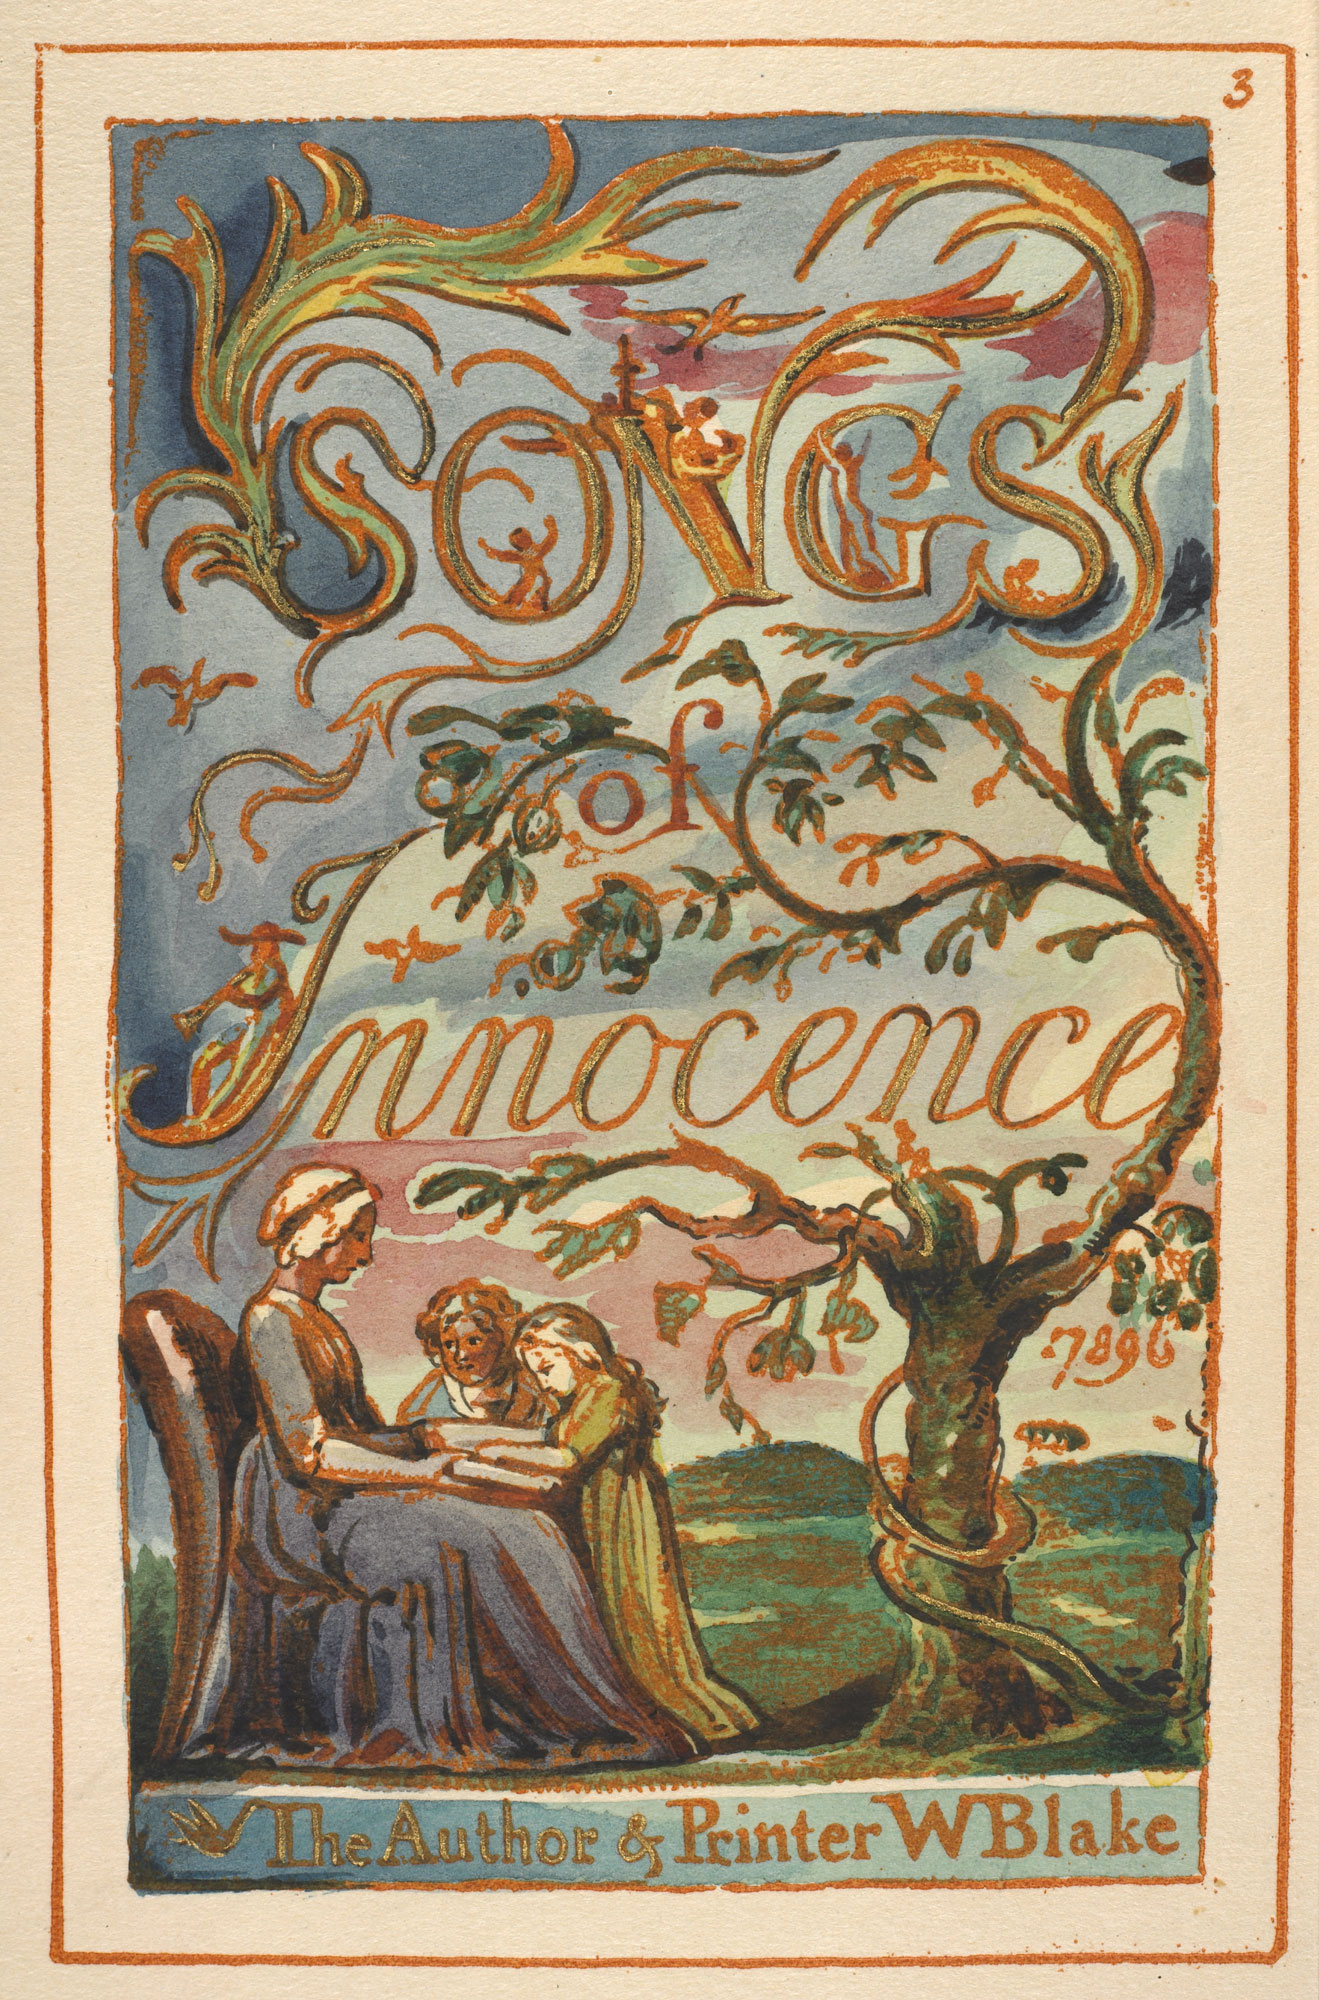 William Blake's Songs of Innocence and Experience [page: 3]